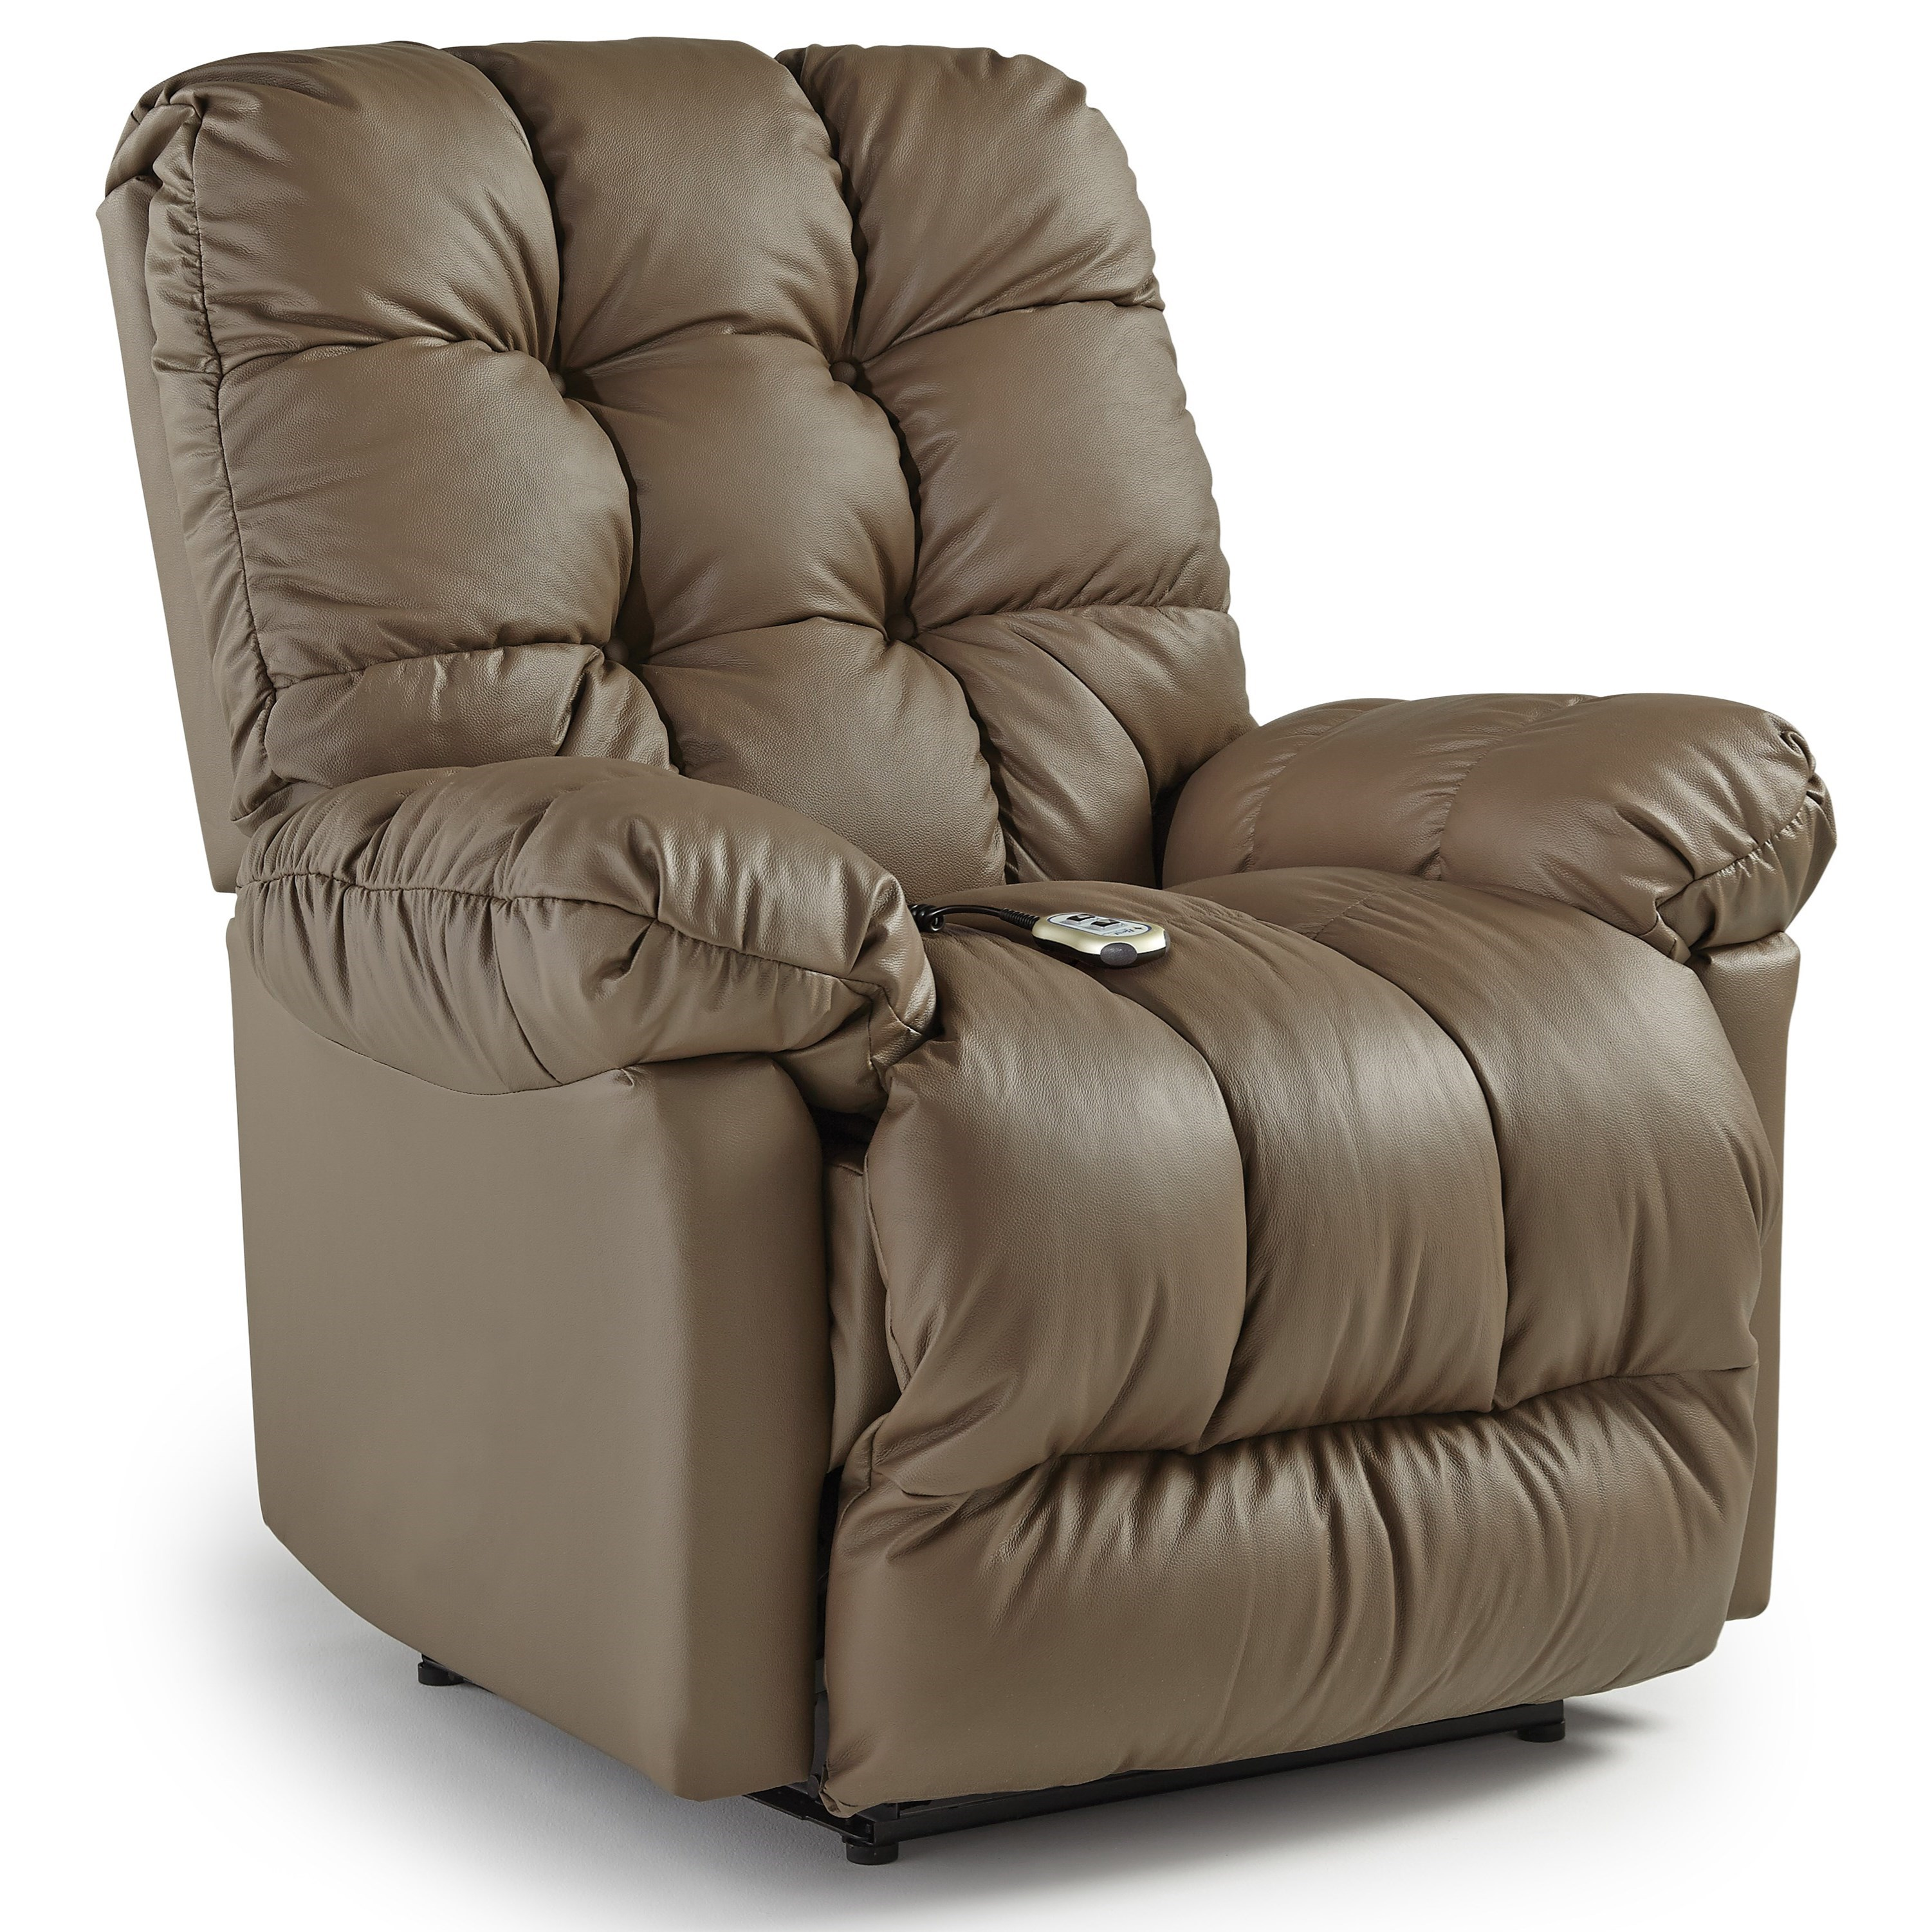 Medium Recliners Brosmer Pwr Swivel Glide Recliner w/Pwr Head by Best Home Furnishings at Baer's Furniture